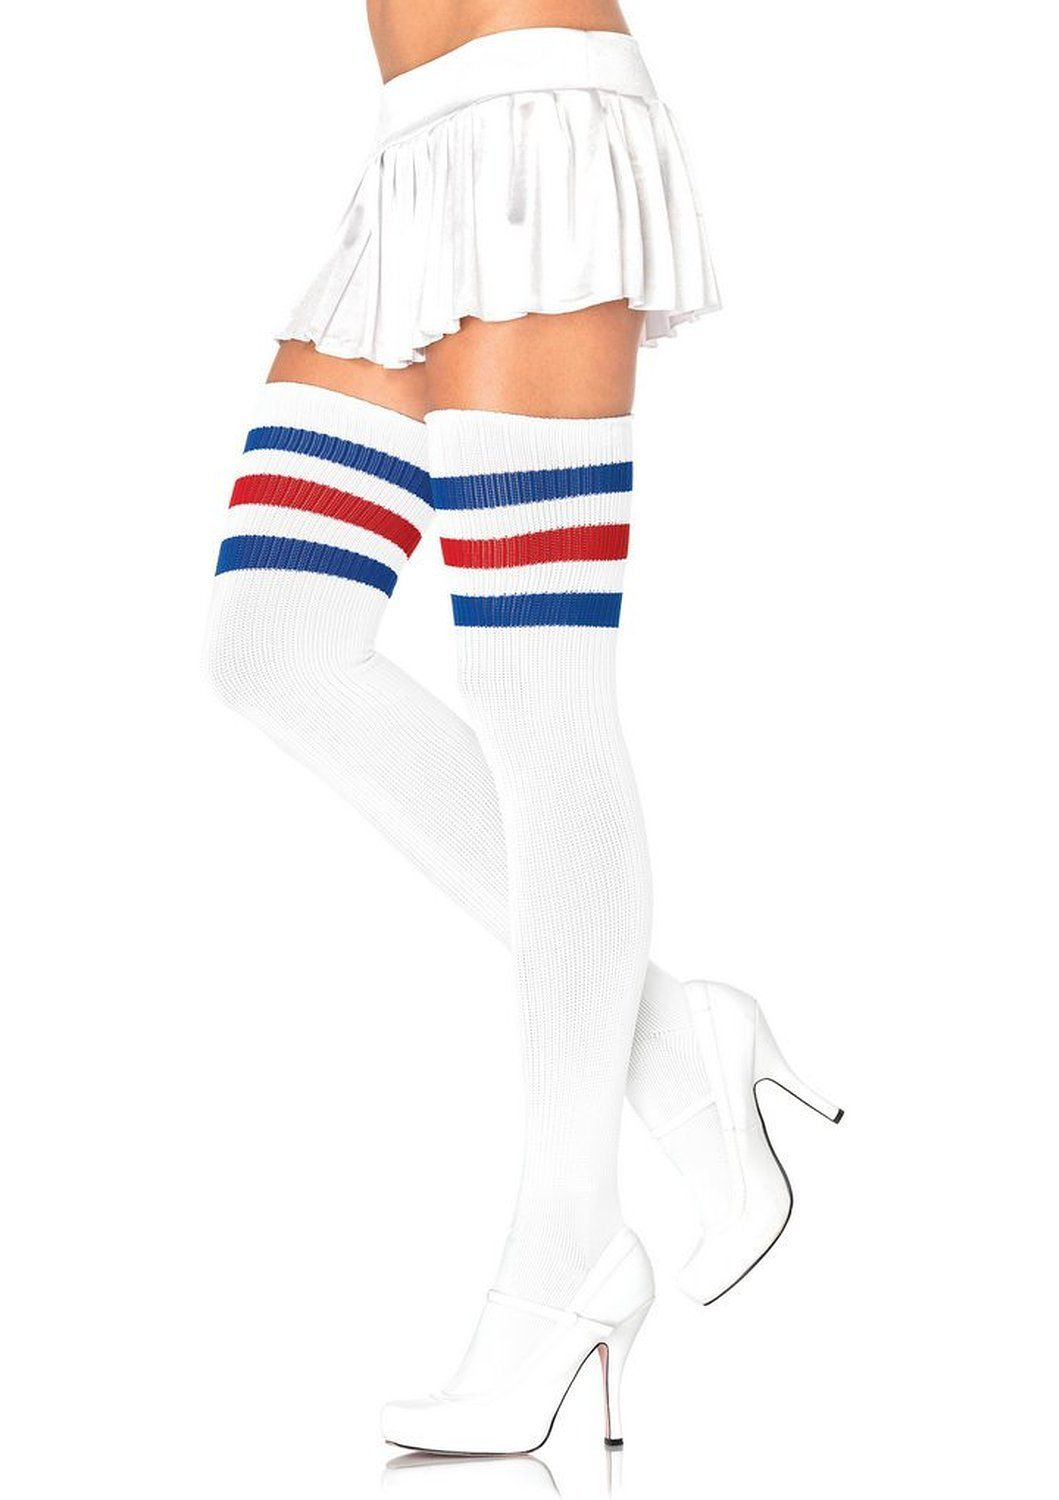 a170d821f Tank Girl  Ziangluke Women Triple Stripe Over the Knee High Socks (White  Blue Red)